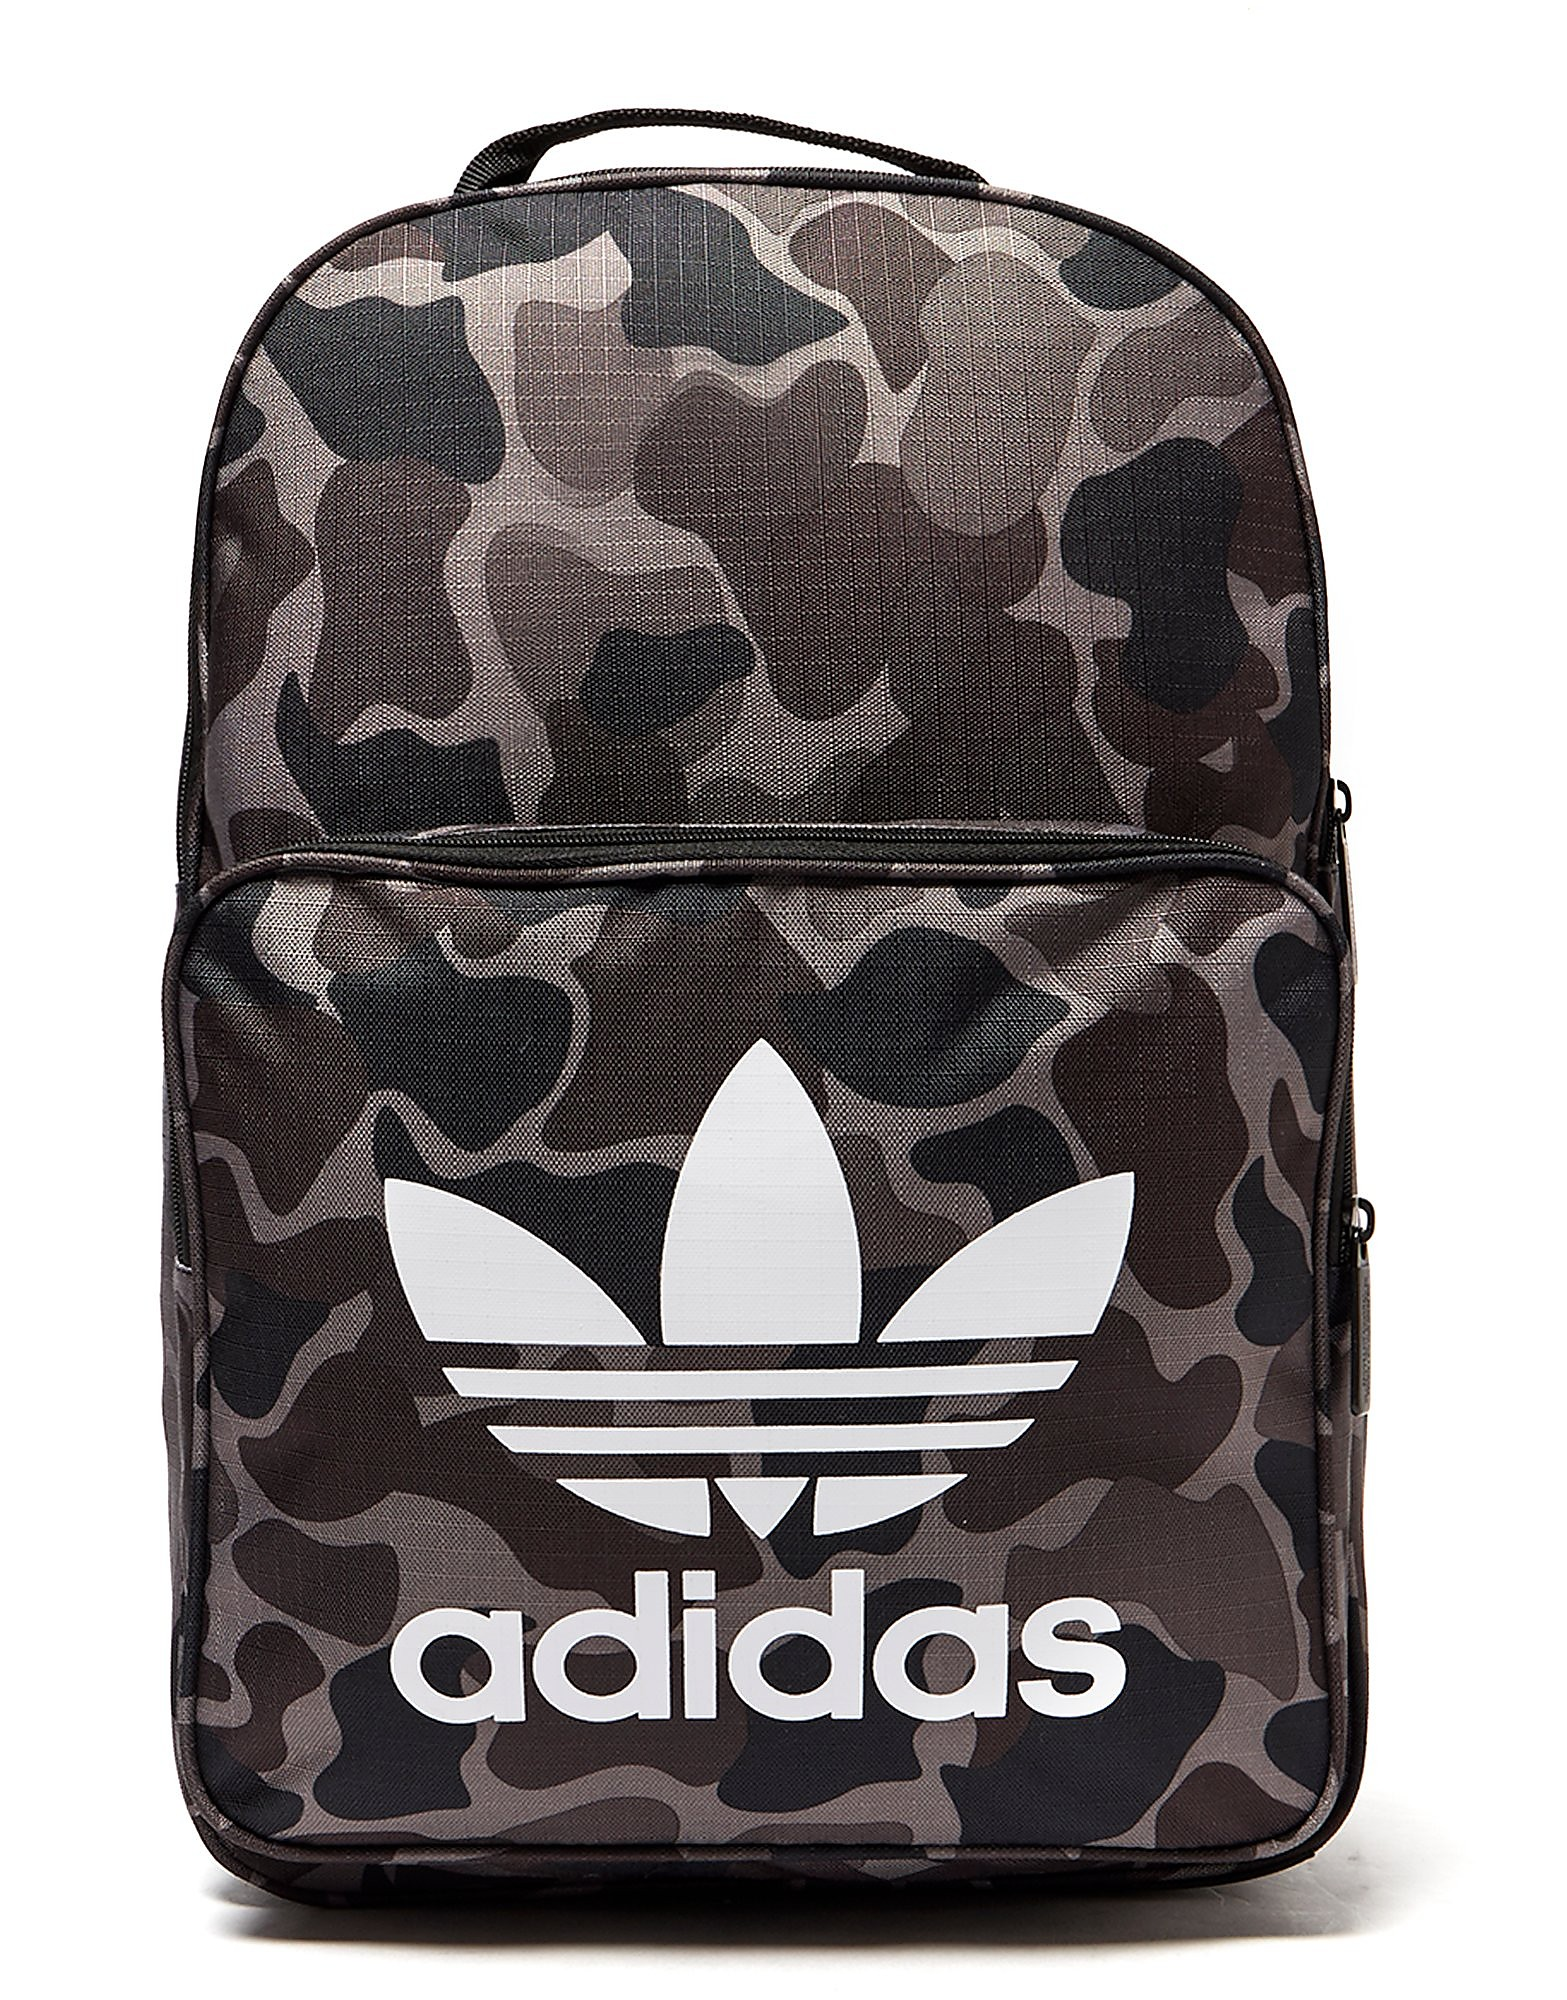 adidas Originals Classic Camo Backpack